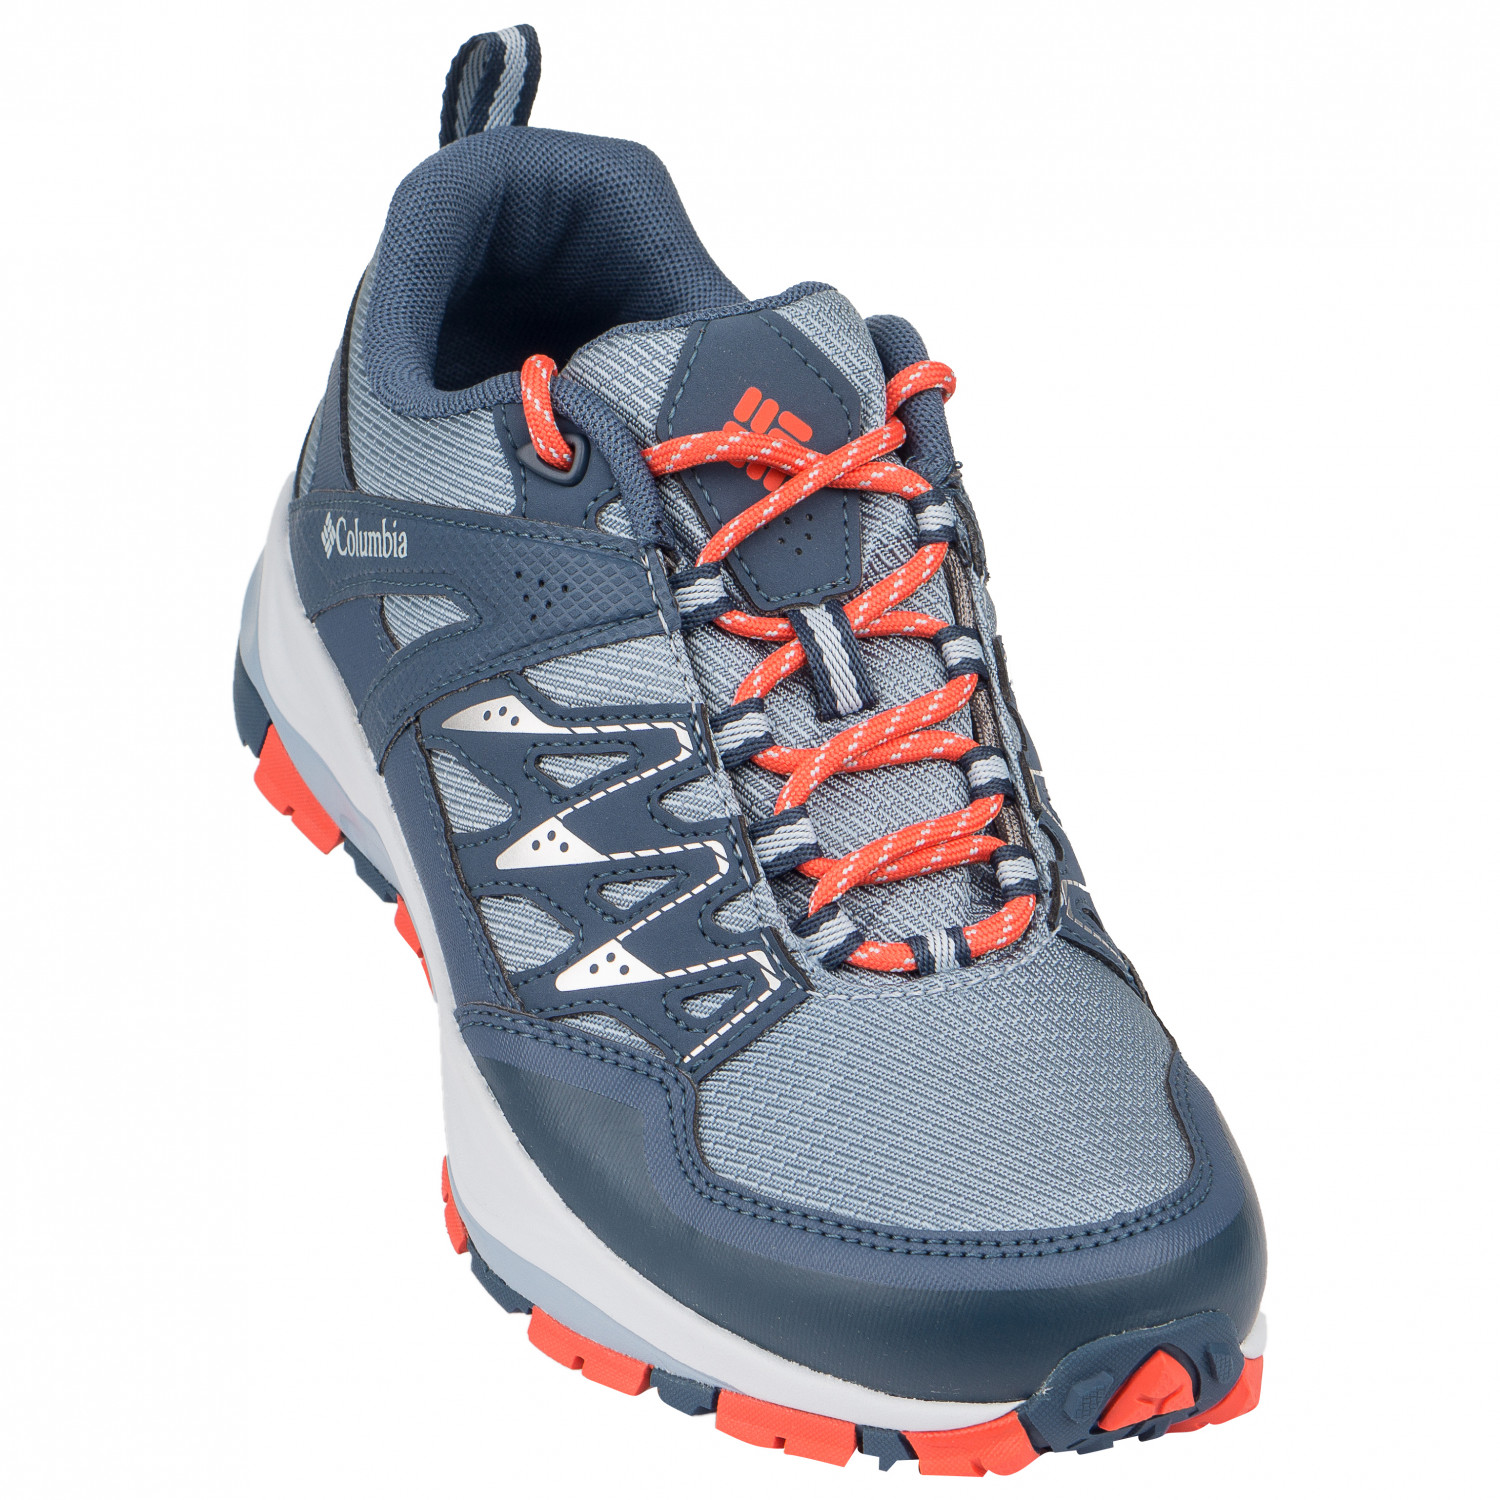 76536dd6de5c8 Columbia - Women's Wayfinder Outdry - Multisport shoes - Dark Mirage / Red  Quartz | 7,5 (US)